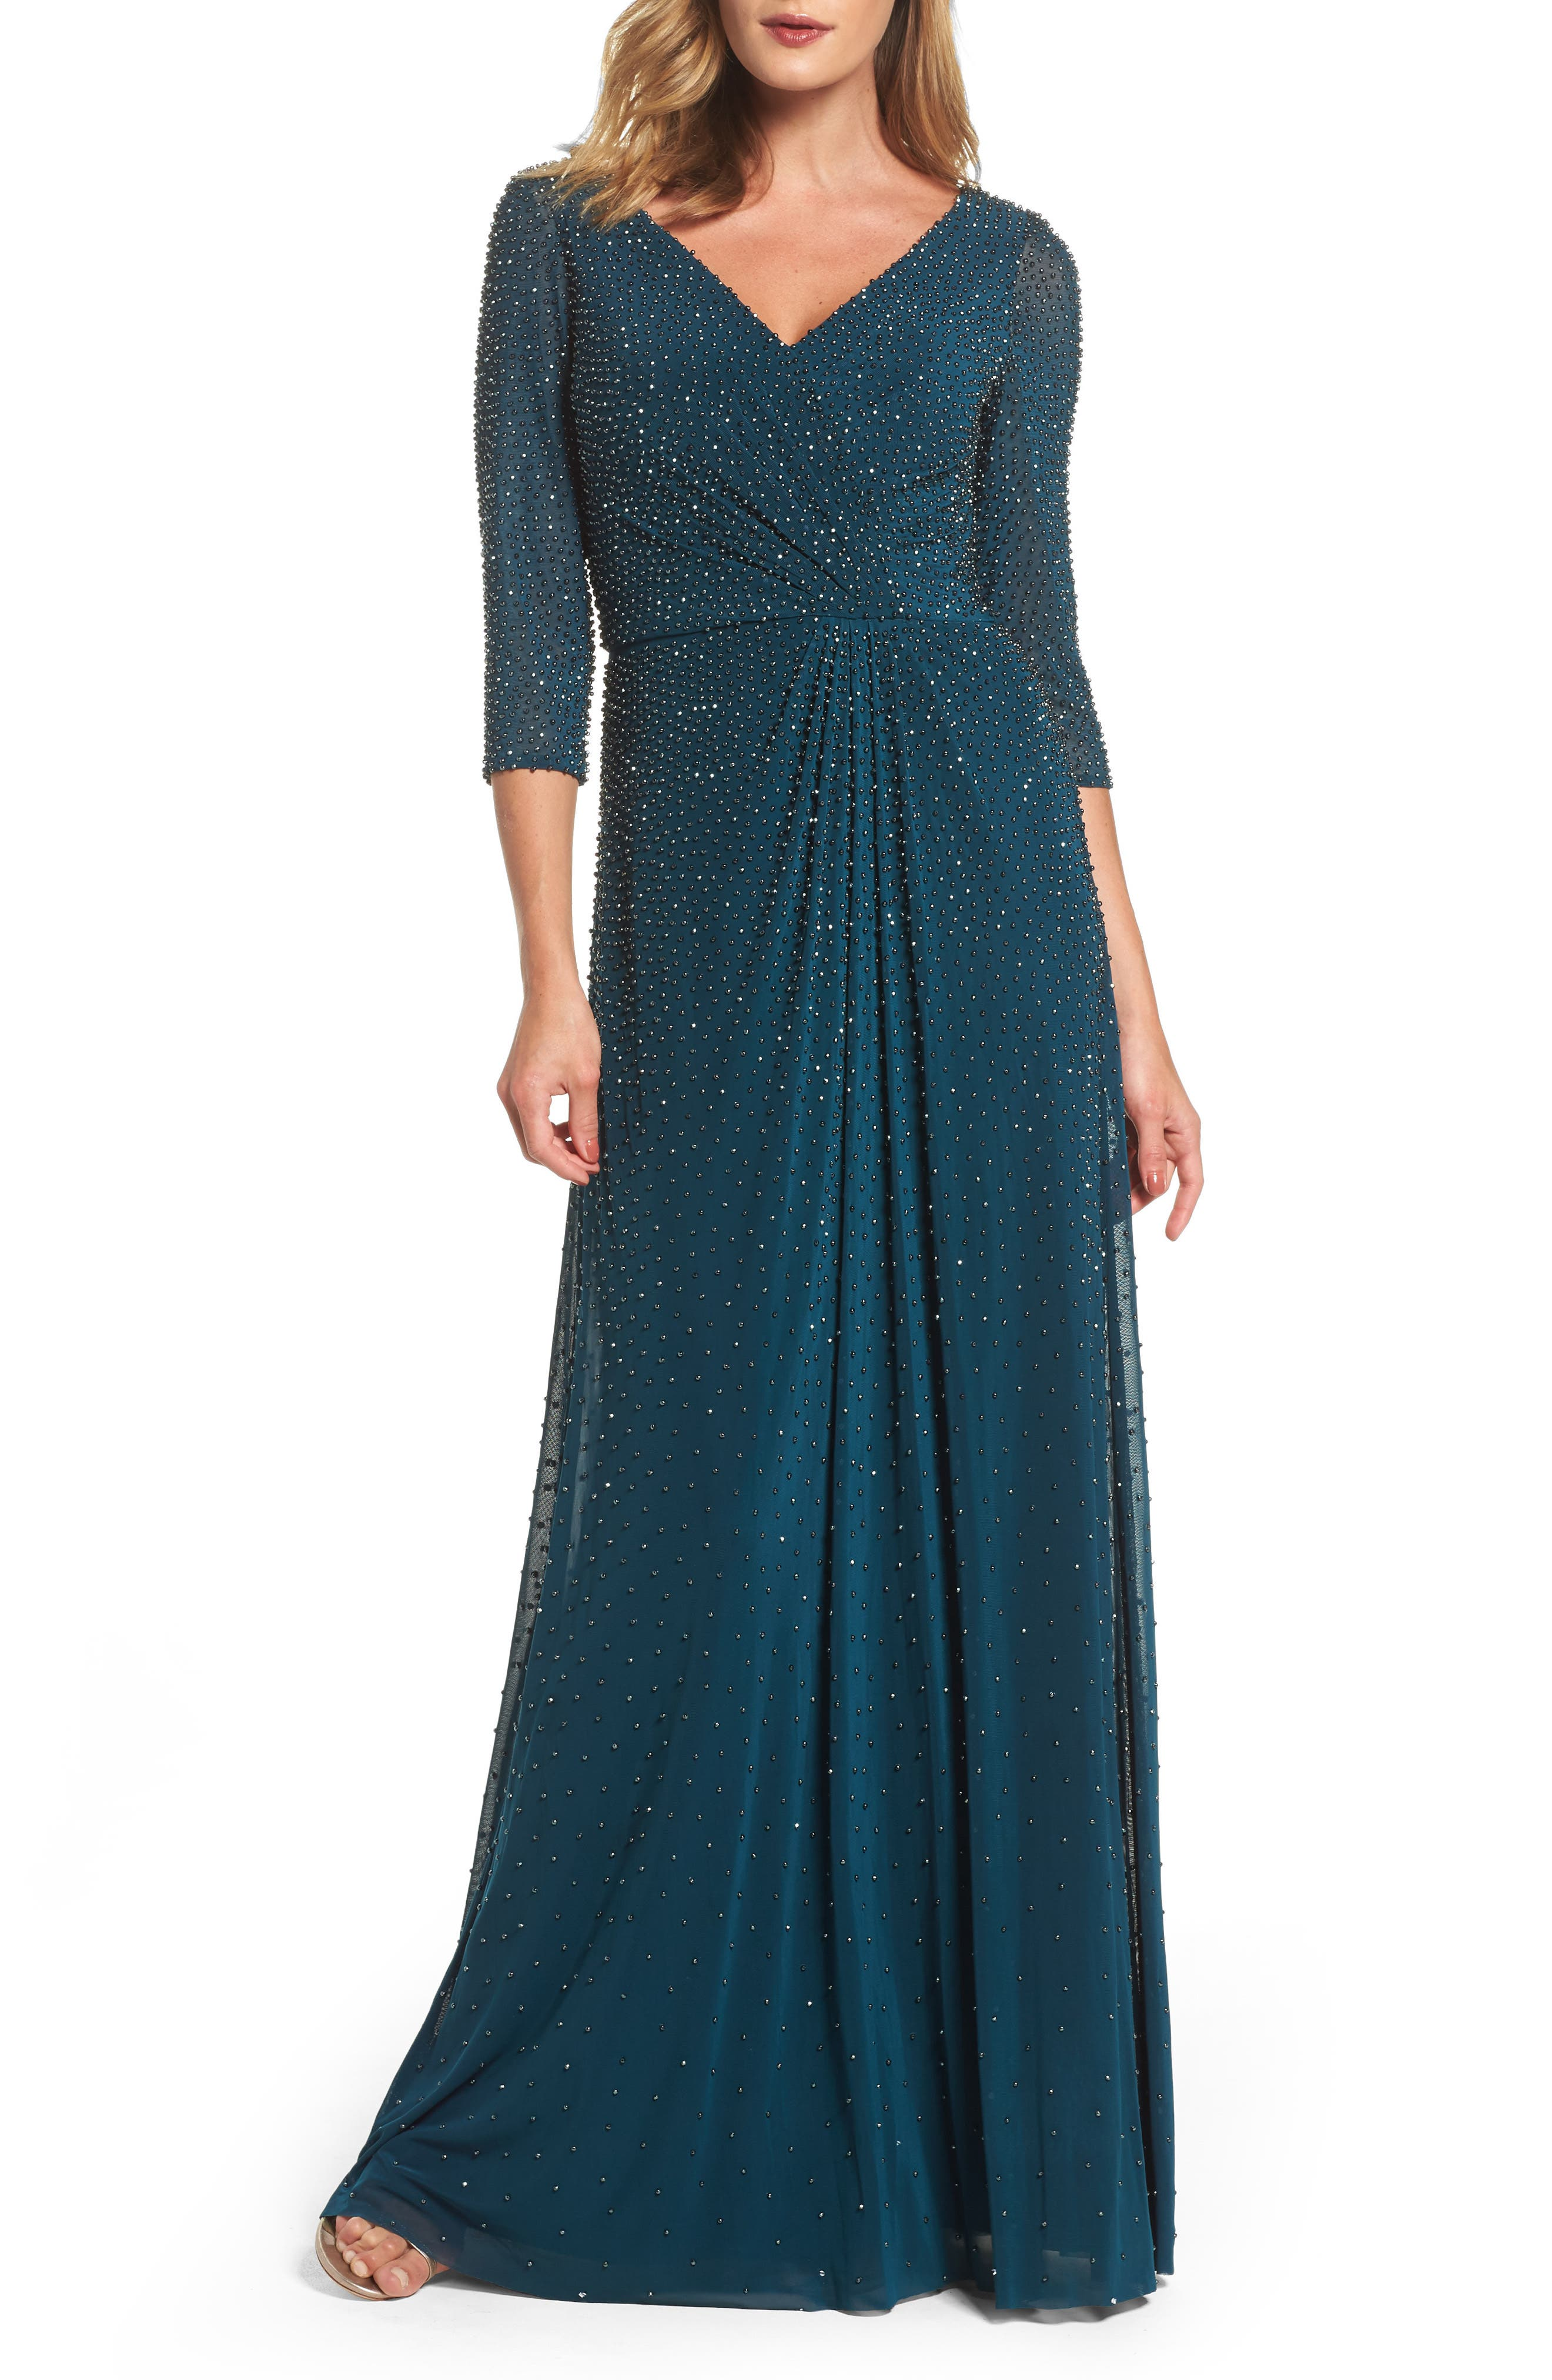 Alternate Image 1 Selected - La Femme Beaded Twist Knot Waist Gown